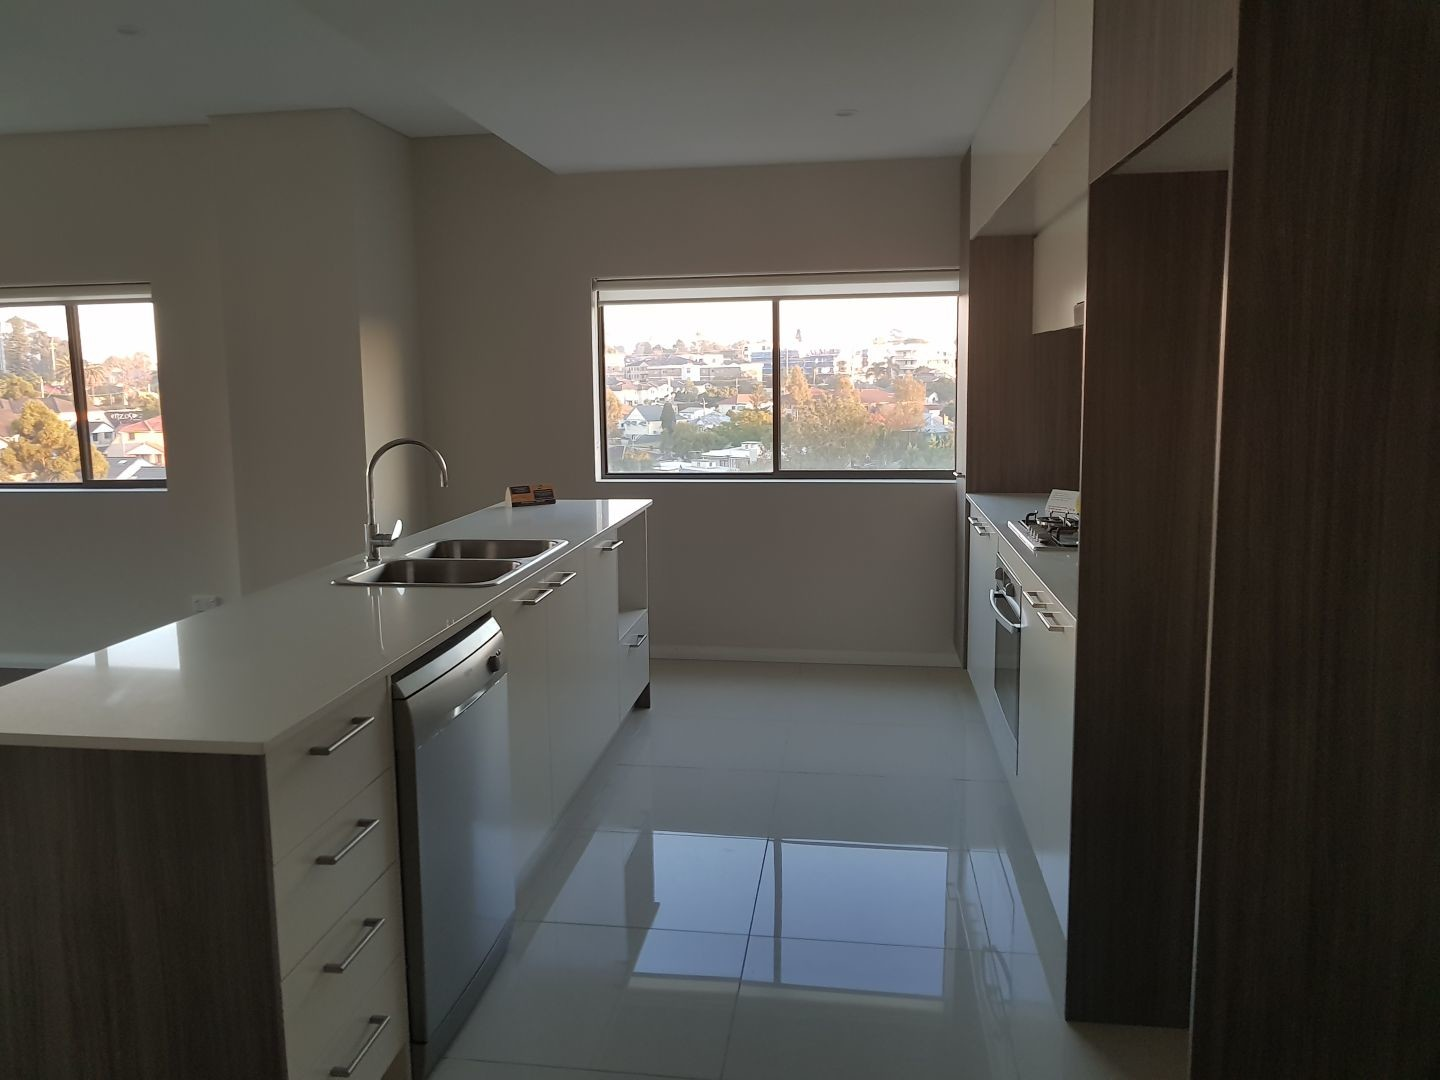 Private ROOM FOR RENT IN (2 BEDROOM, 2 BATHROOMS, BALCONY, LOUNGE ...